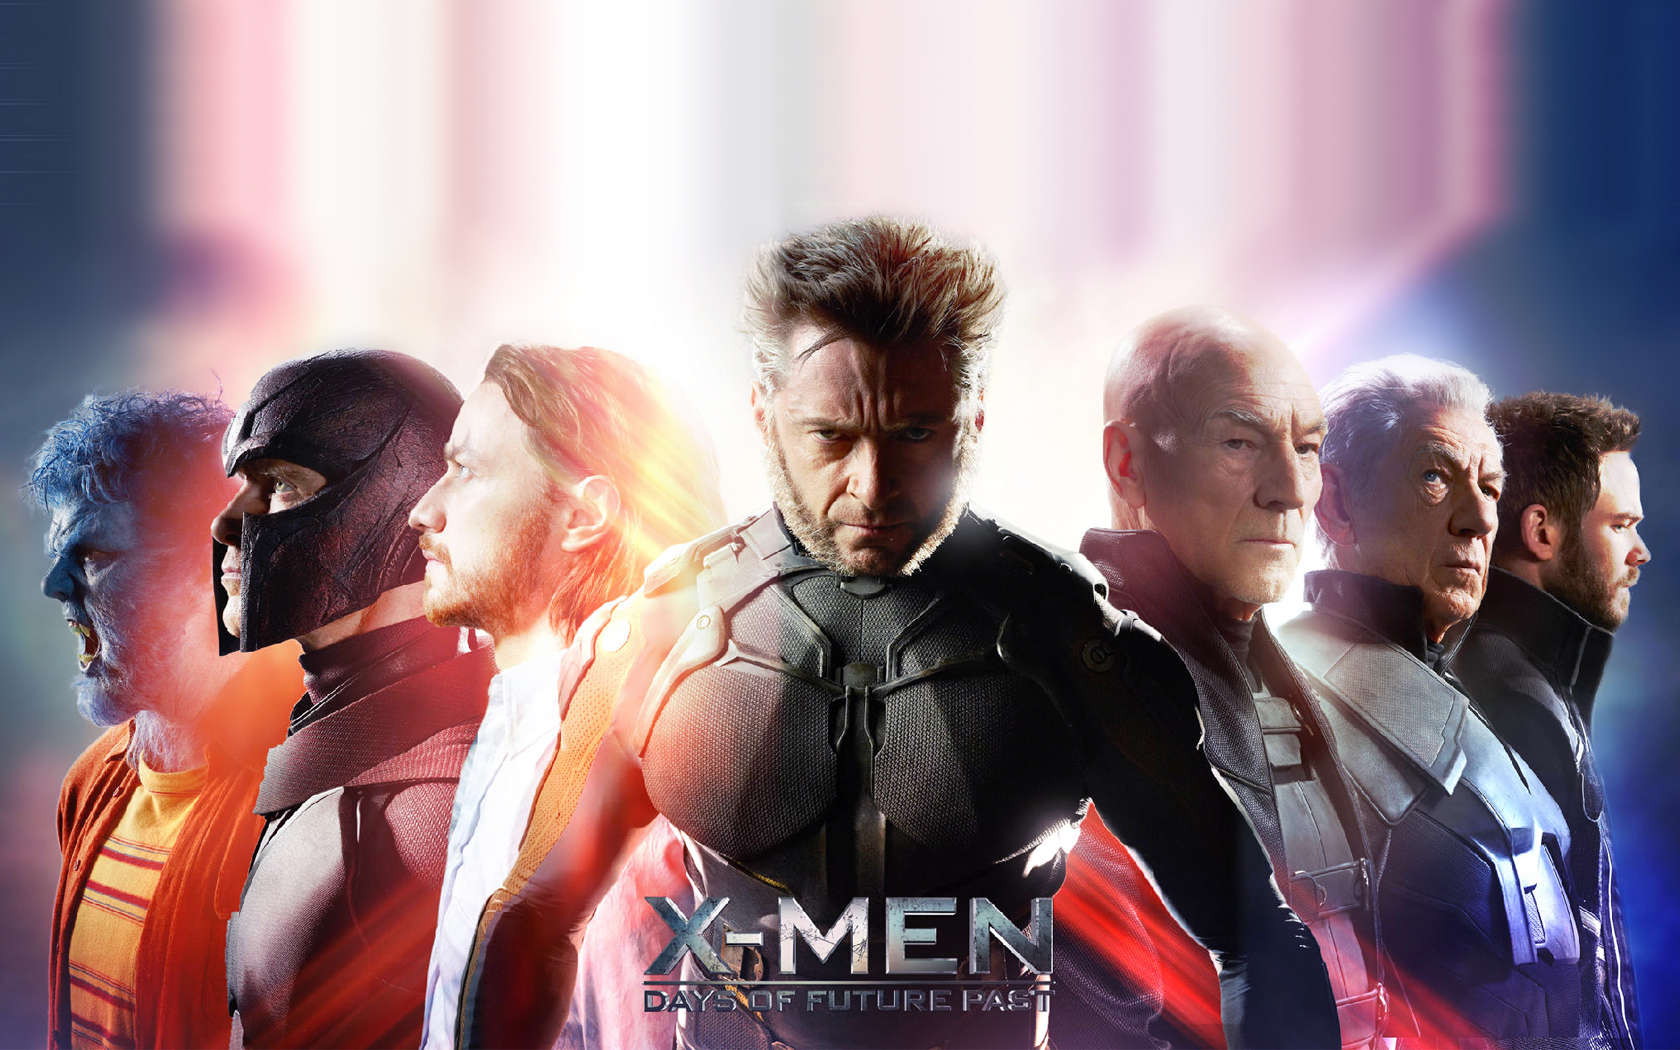 X-Men-Days-of-Future-Past-Cast-2014-HD-Wallpaper